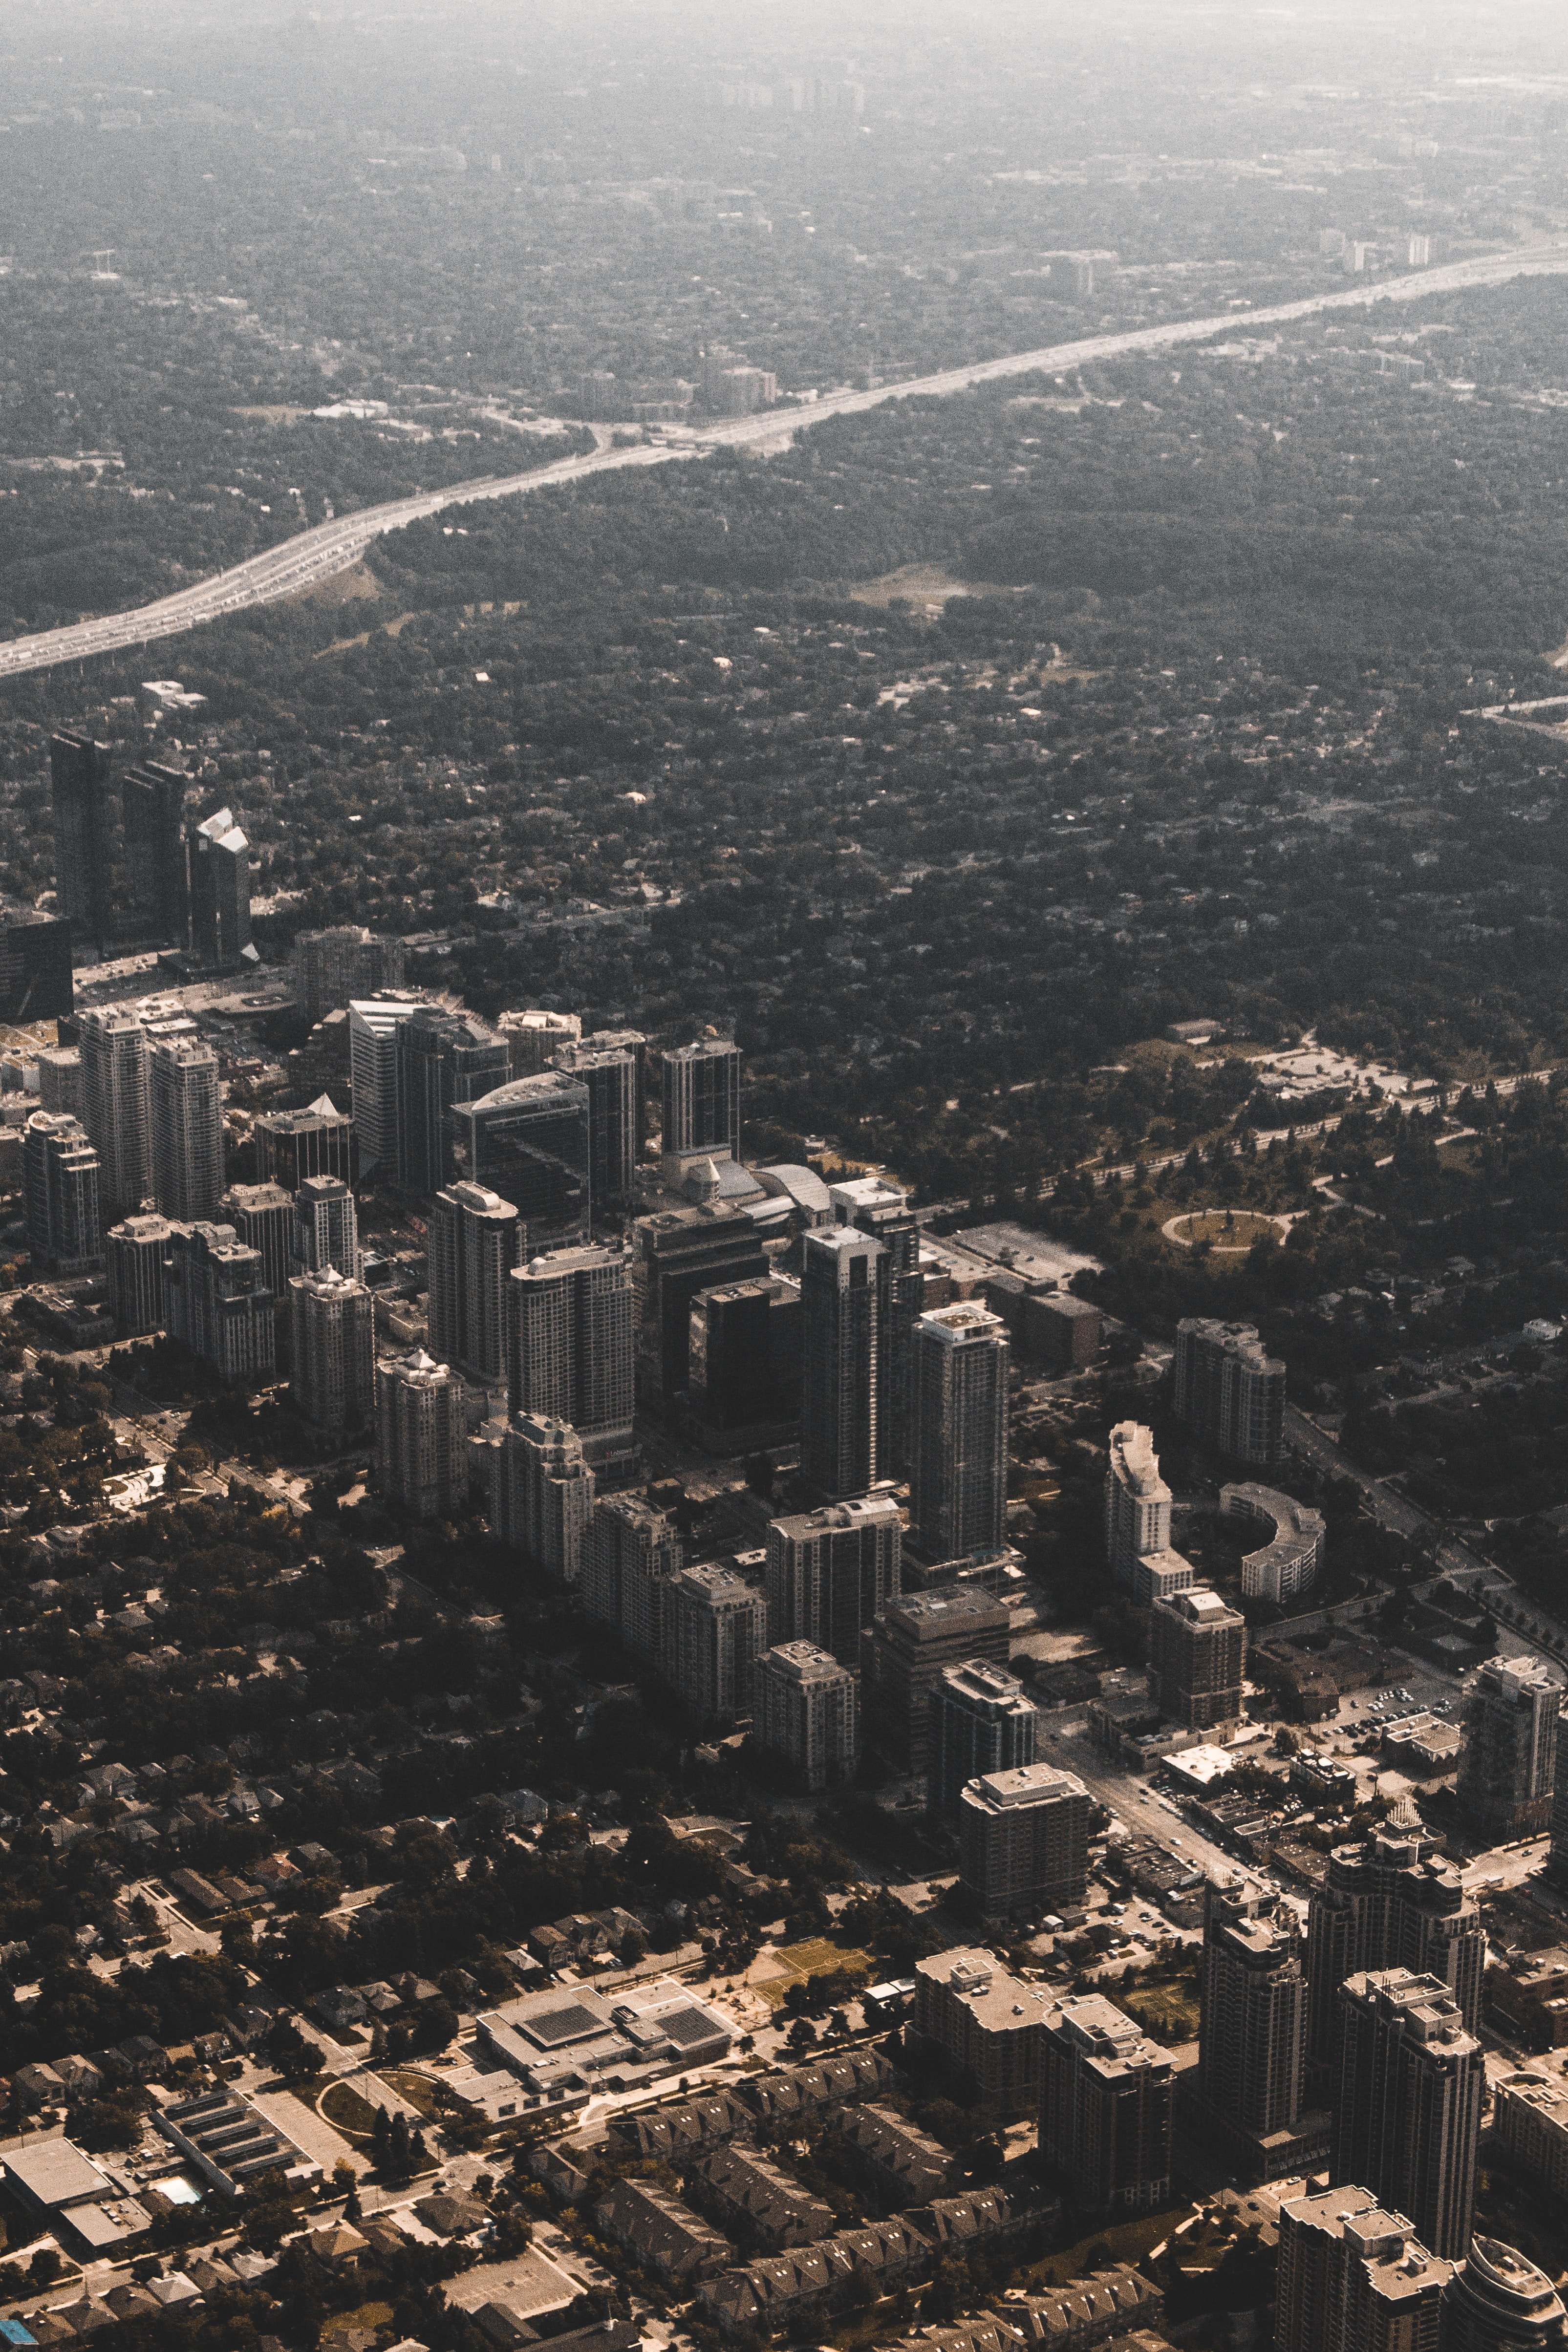 bird's eye view photography of cityscape